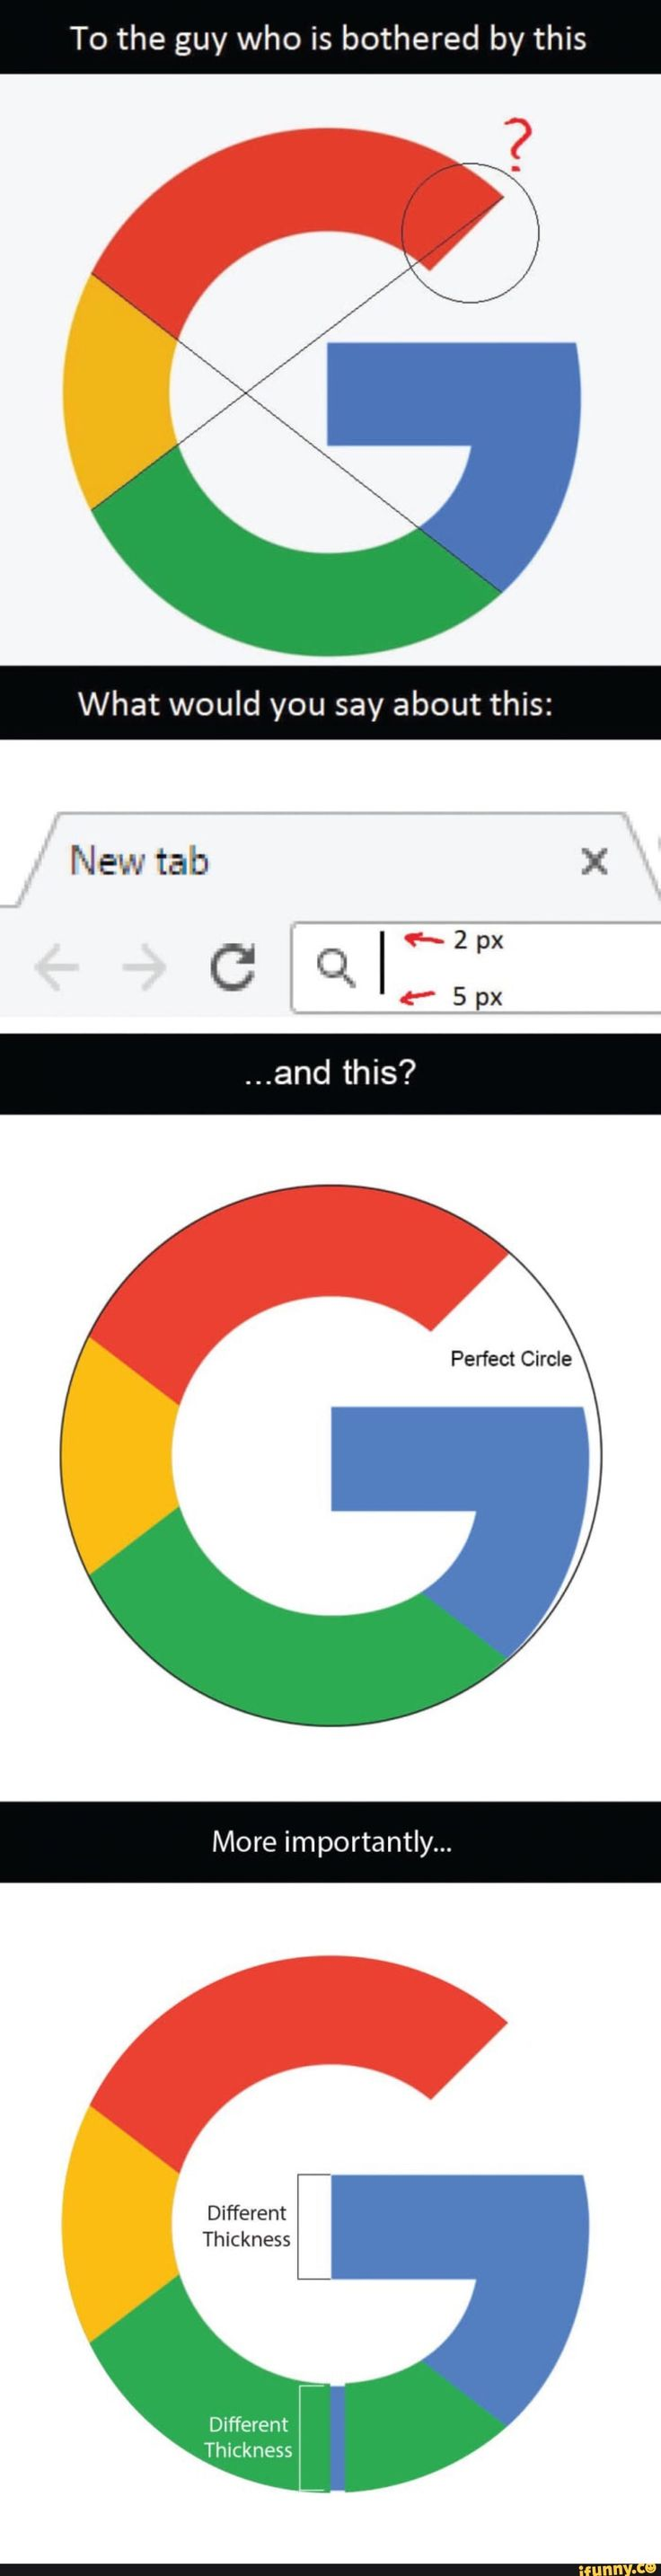 Arghhhh! I'm going crazy! SOMEBODY HIRE ANOTHER PERSON TO DESIGN THE STUPID GOOGLE LOGO THINGY!!!!